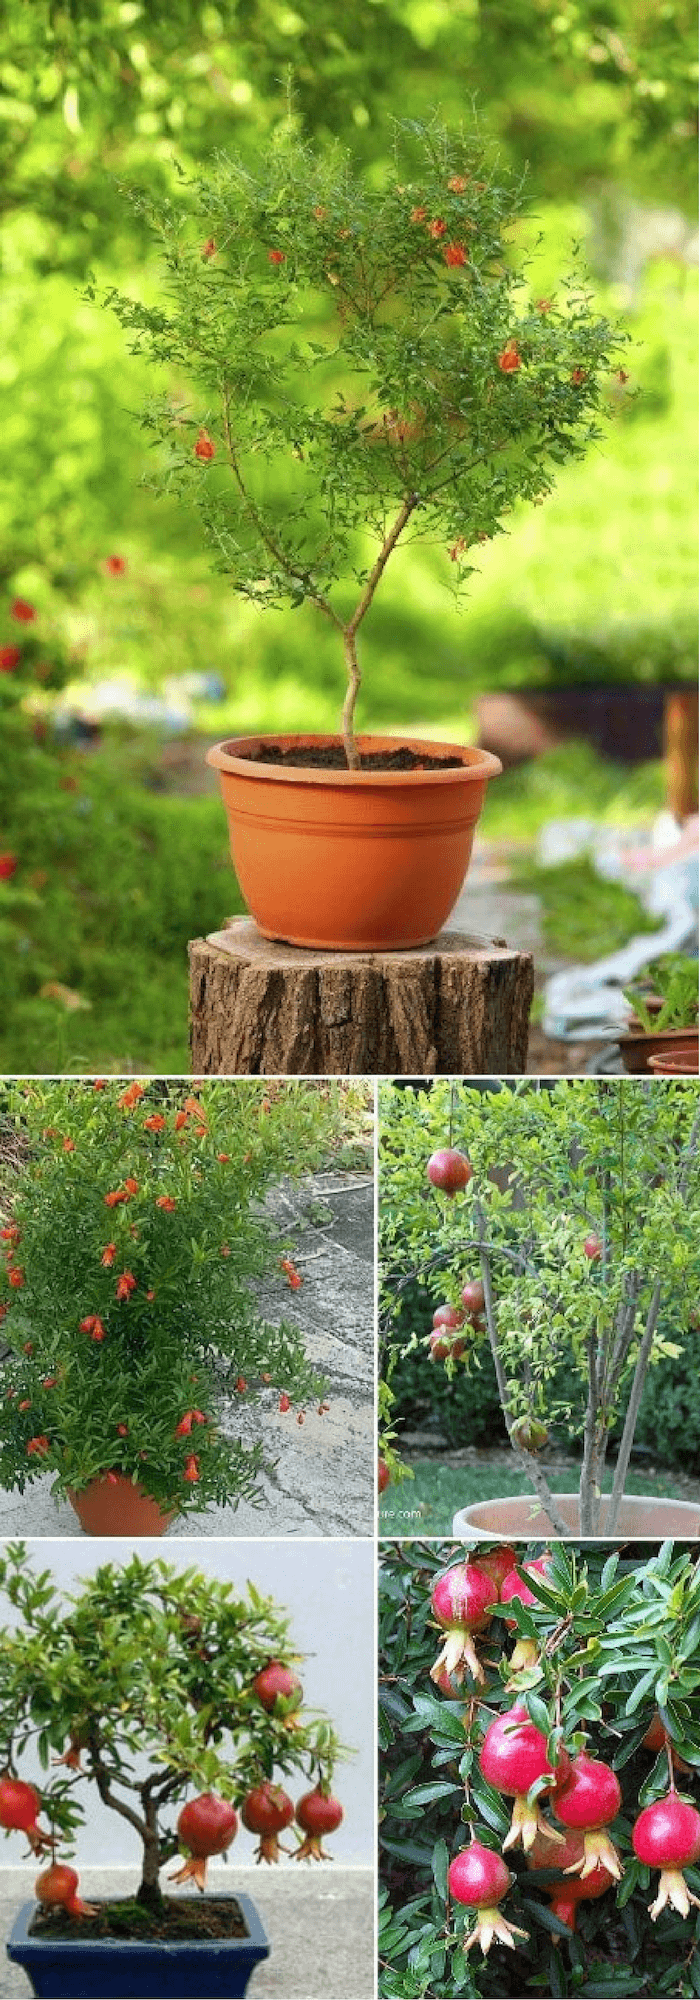 Growing Pomegranate tree in pots